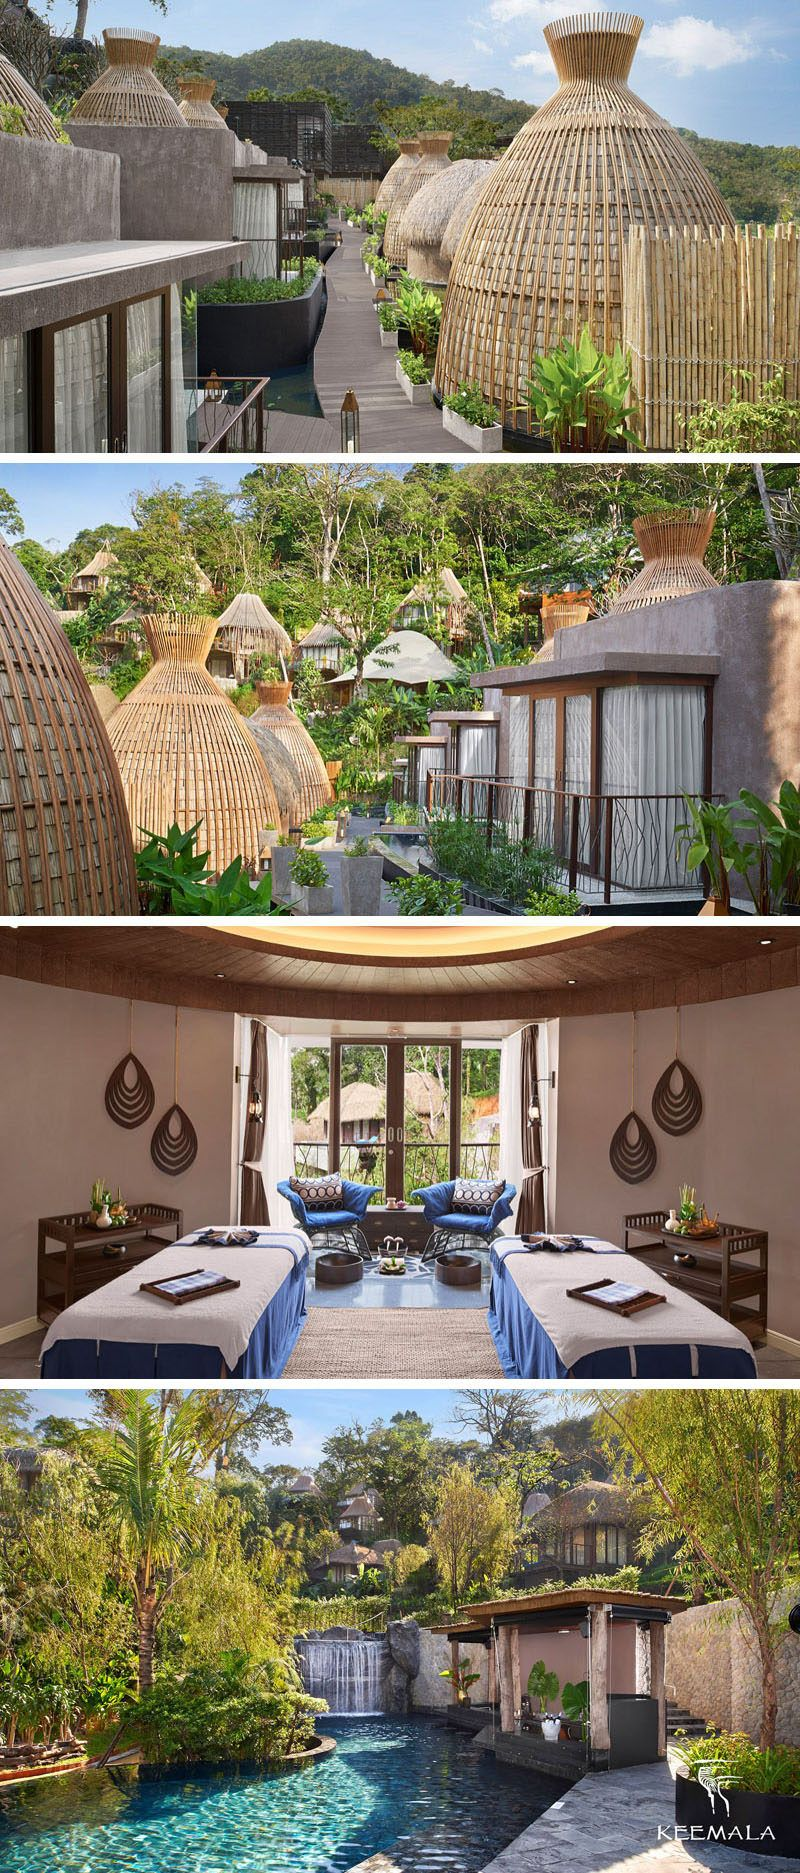 Travel Idea This Resort Is Surrounded By Trees And Was Inspired By Four Fictitous Clans Resort Architecture Resort Hotel Design Resort Design